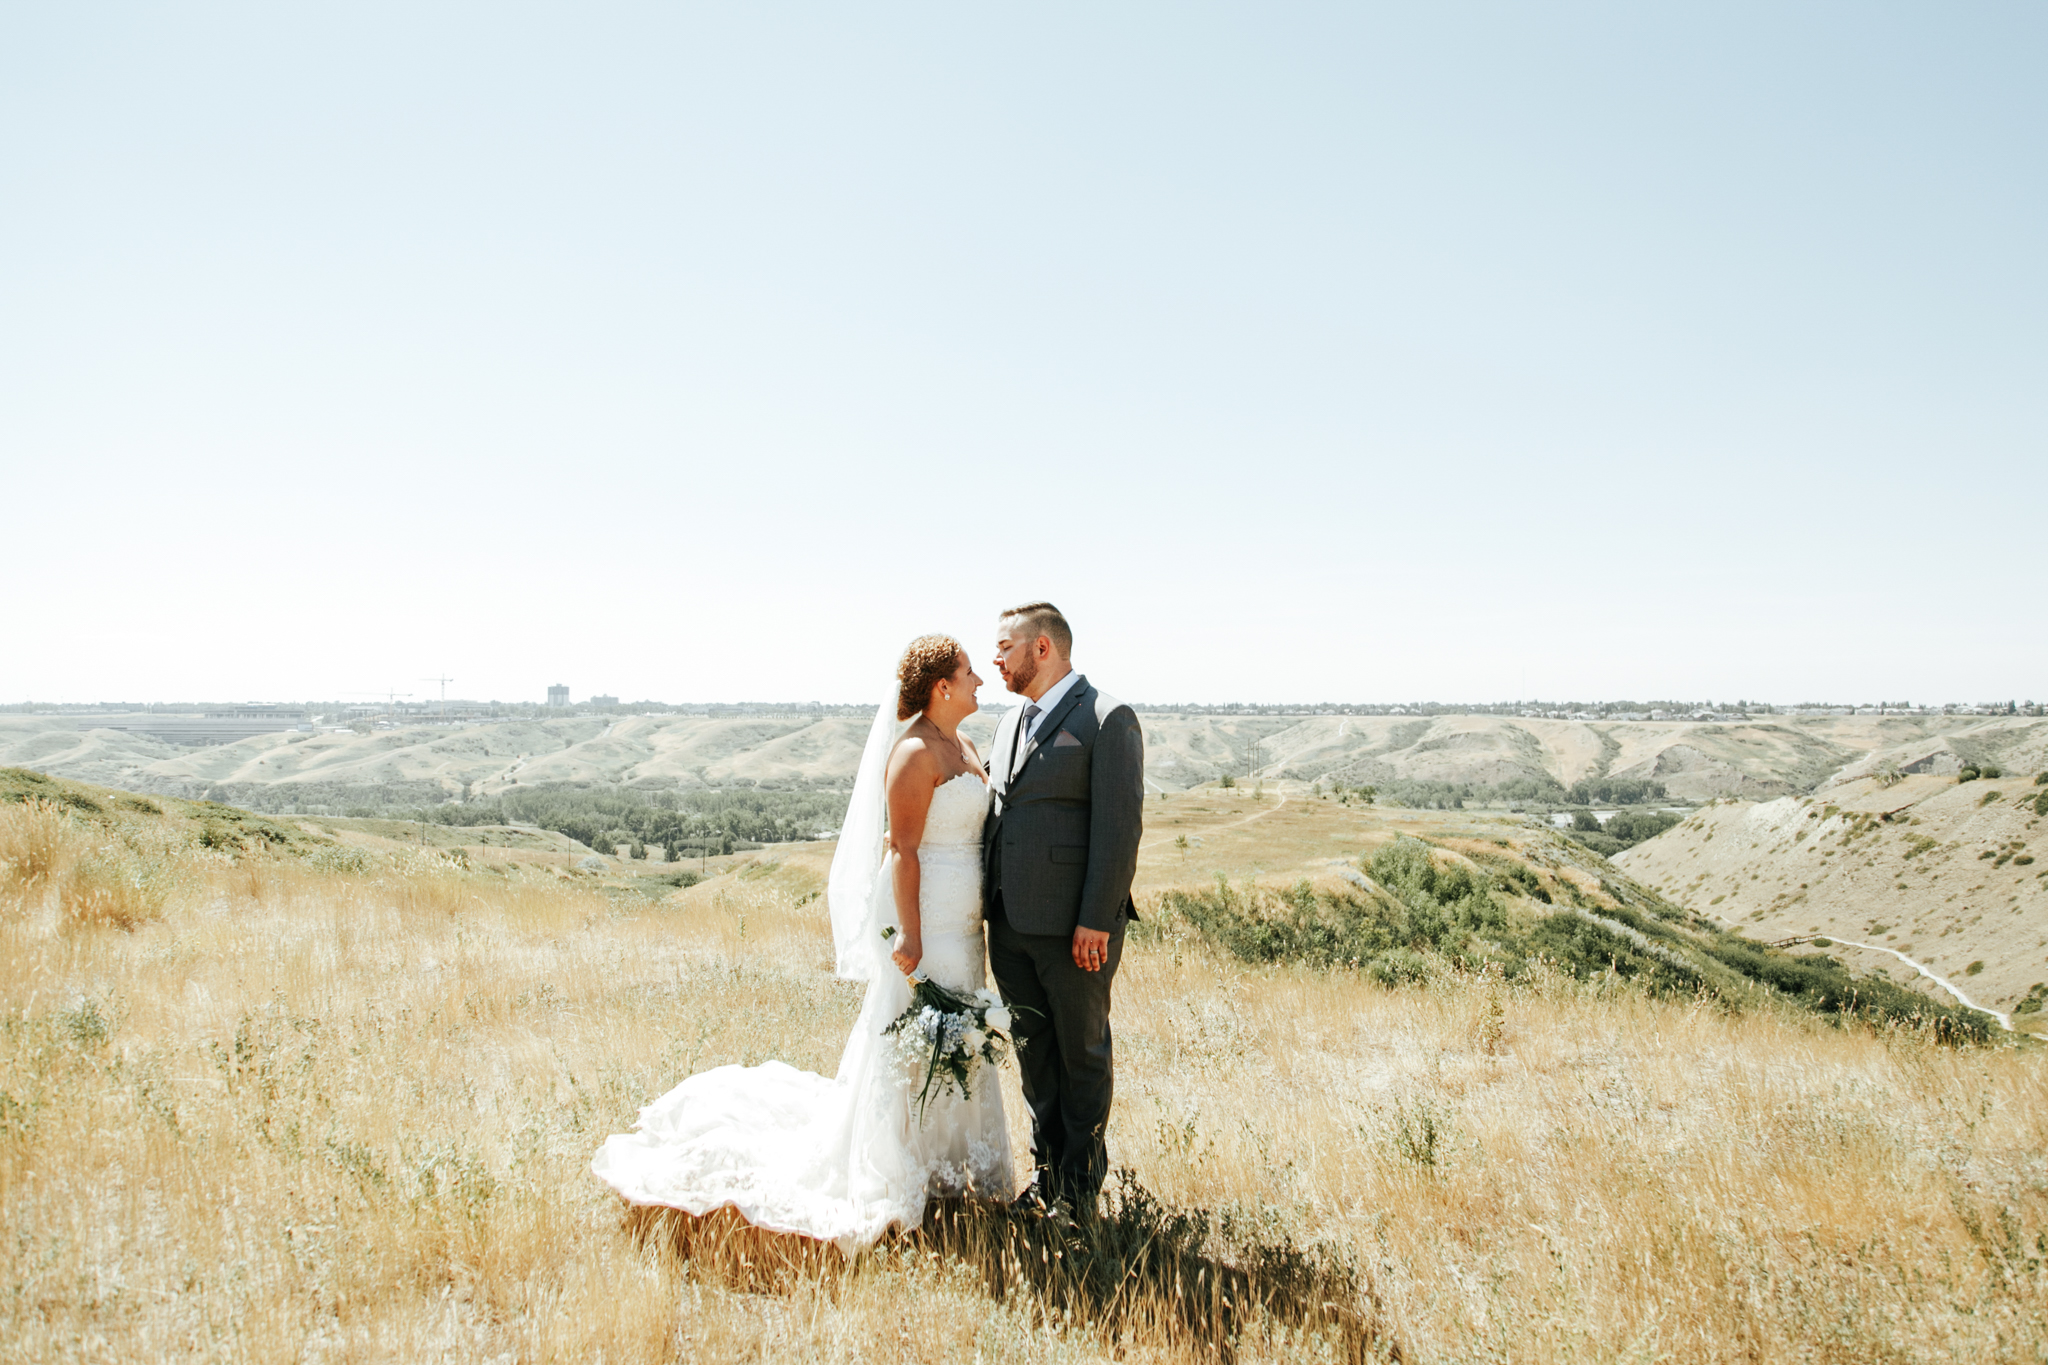 lethbridge-wedding-photographer-love-and-be-loved-photography-trent-danielle-galt-reception-picture-image-photo-91.jpg